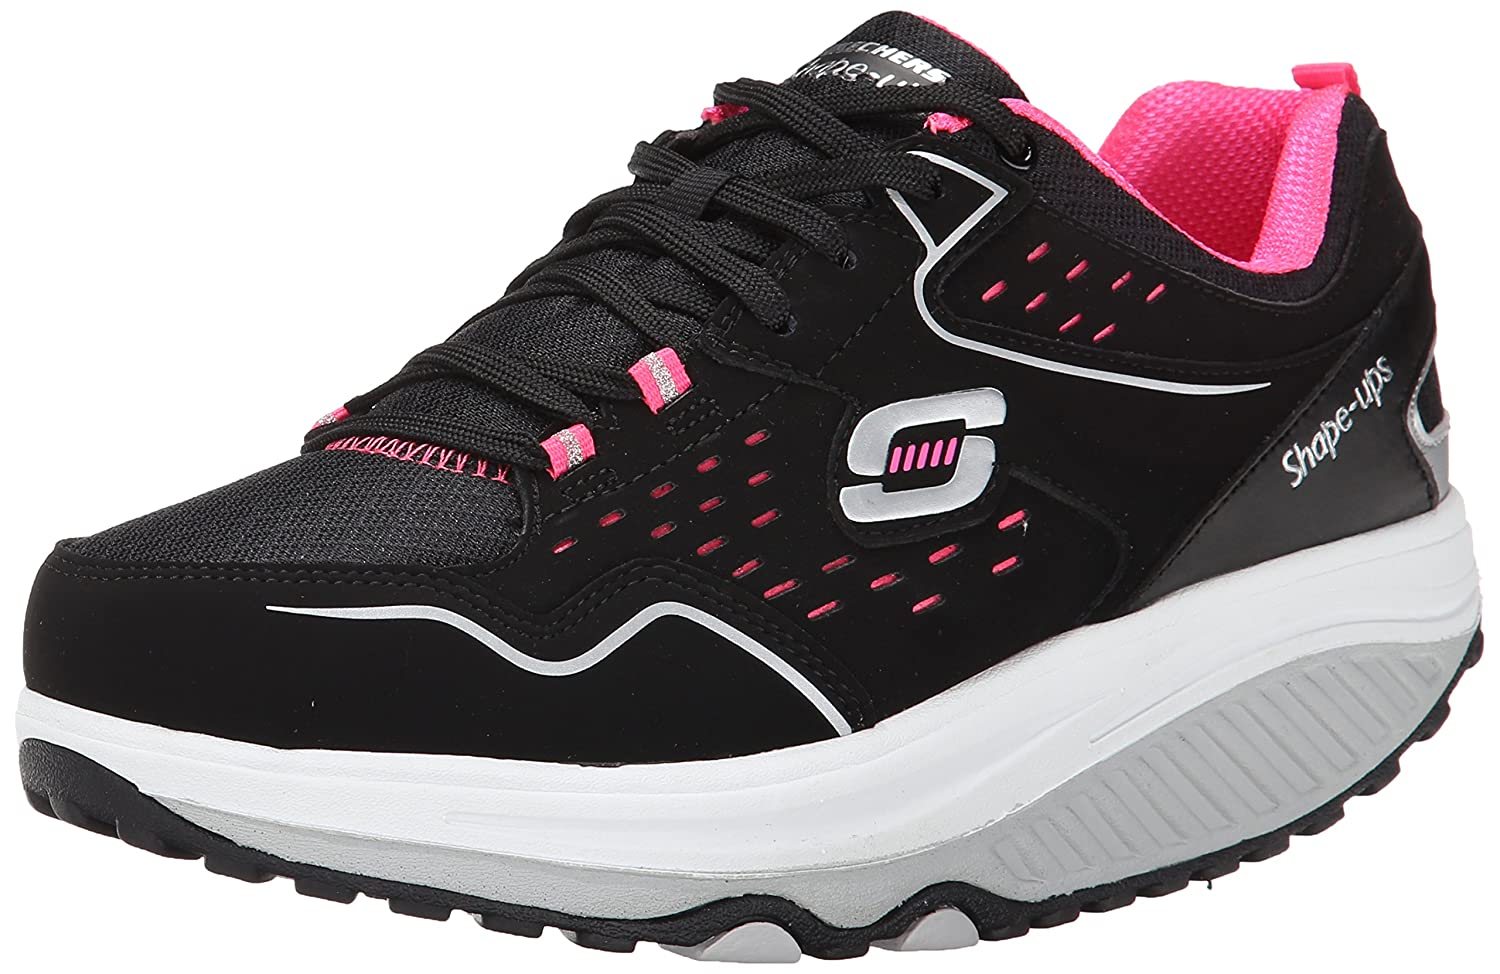 Skechers Women's Shape Ups 2.0 Perfect Comfort Fashion Sneaker B00R1OBQQ0 7 B(M) US|Black/Hot Pink